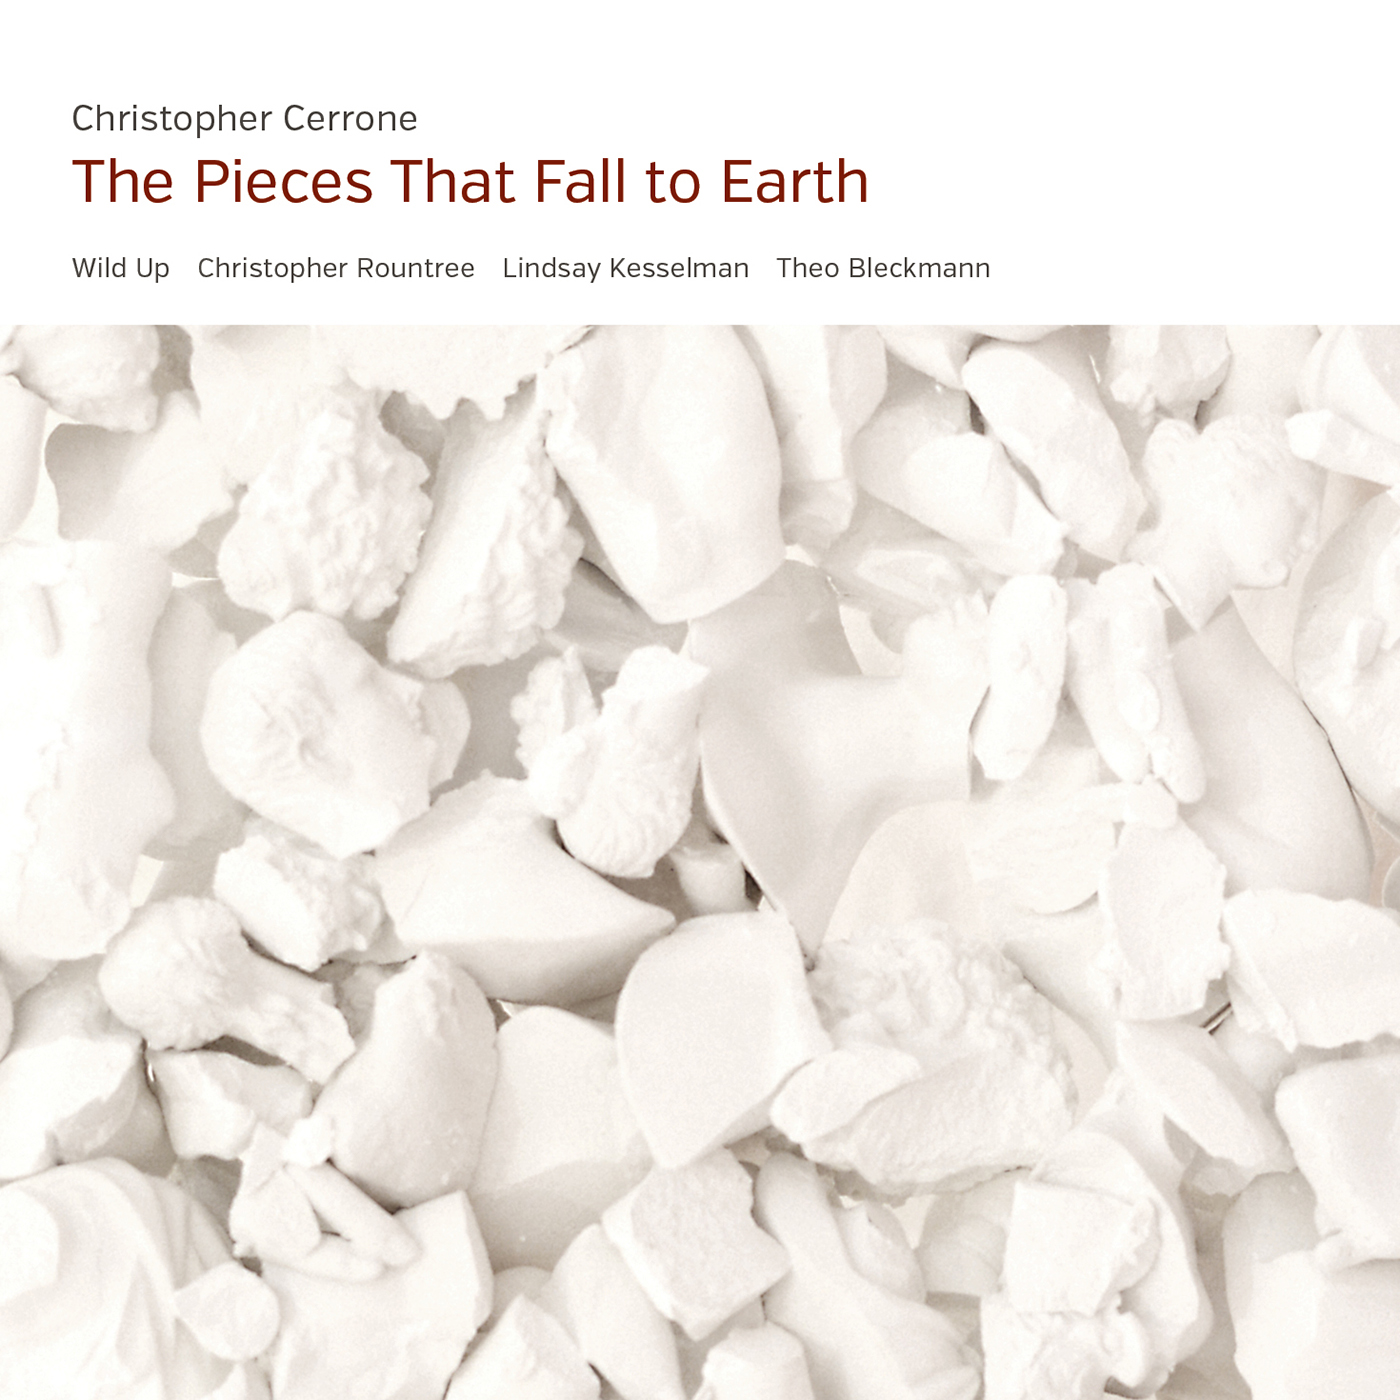 Chris+Cerrone+-+The+Pieces+That+Fall+To+Earth_Cover.jpg